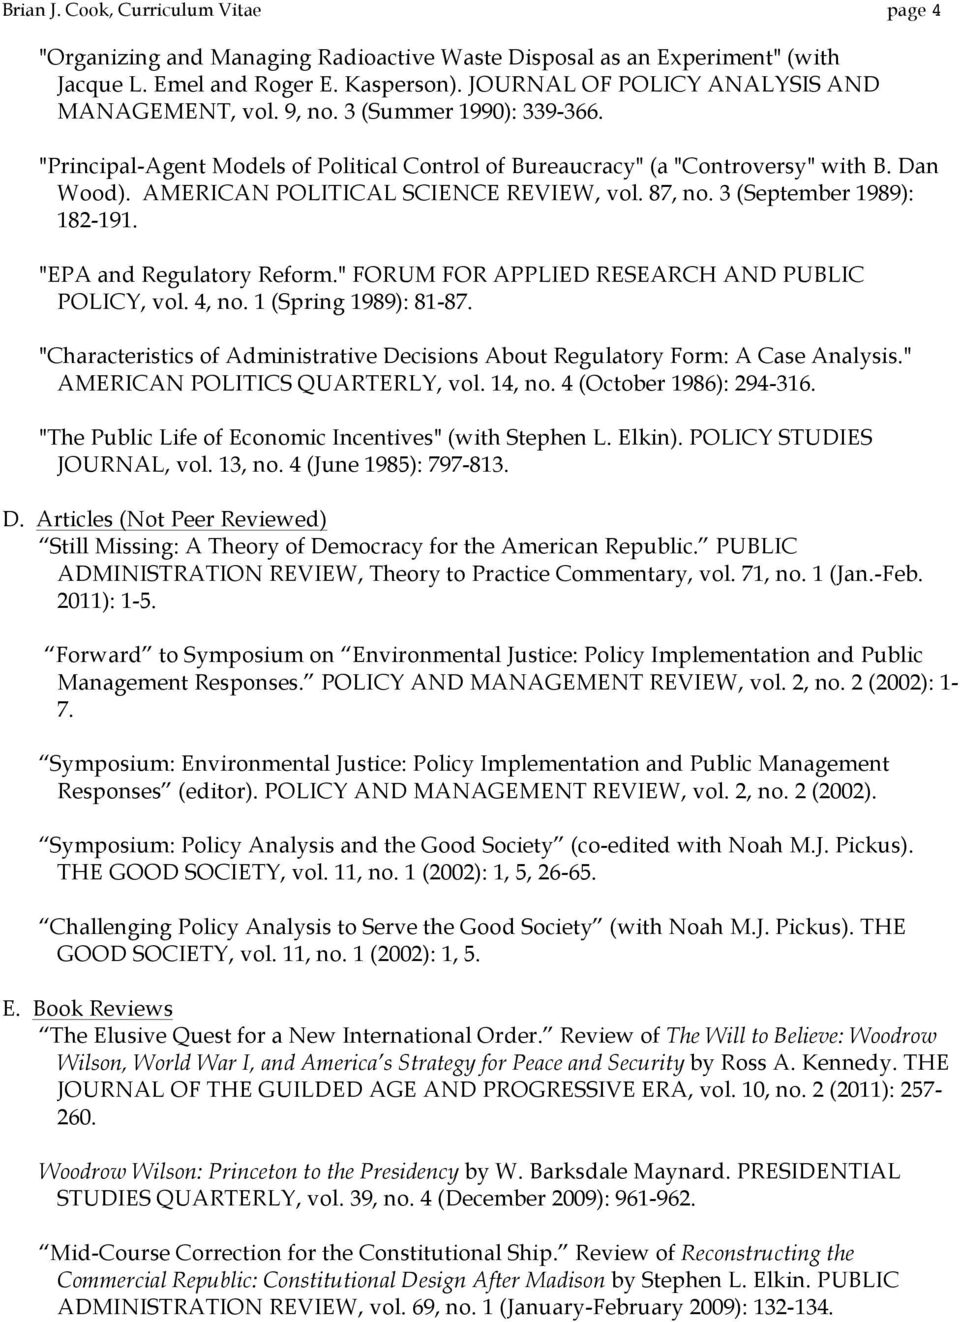 "AMERICAN POLITICAL SCIENCE REVIEW, vol. 87, no. 3 (September 1989): 182-191. ""EPA and Regulatory Reform."" FORUM FOR APPLIED RESEARCH AND PUBLIC POLICY, vol. 4, no. 1 (Spring 1989): 81-87."